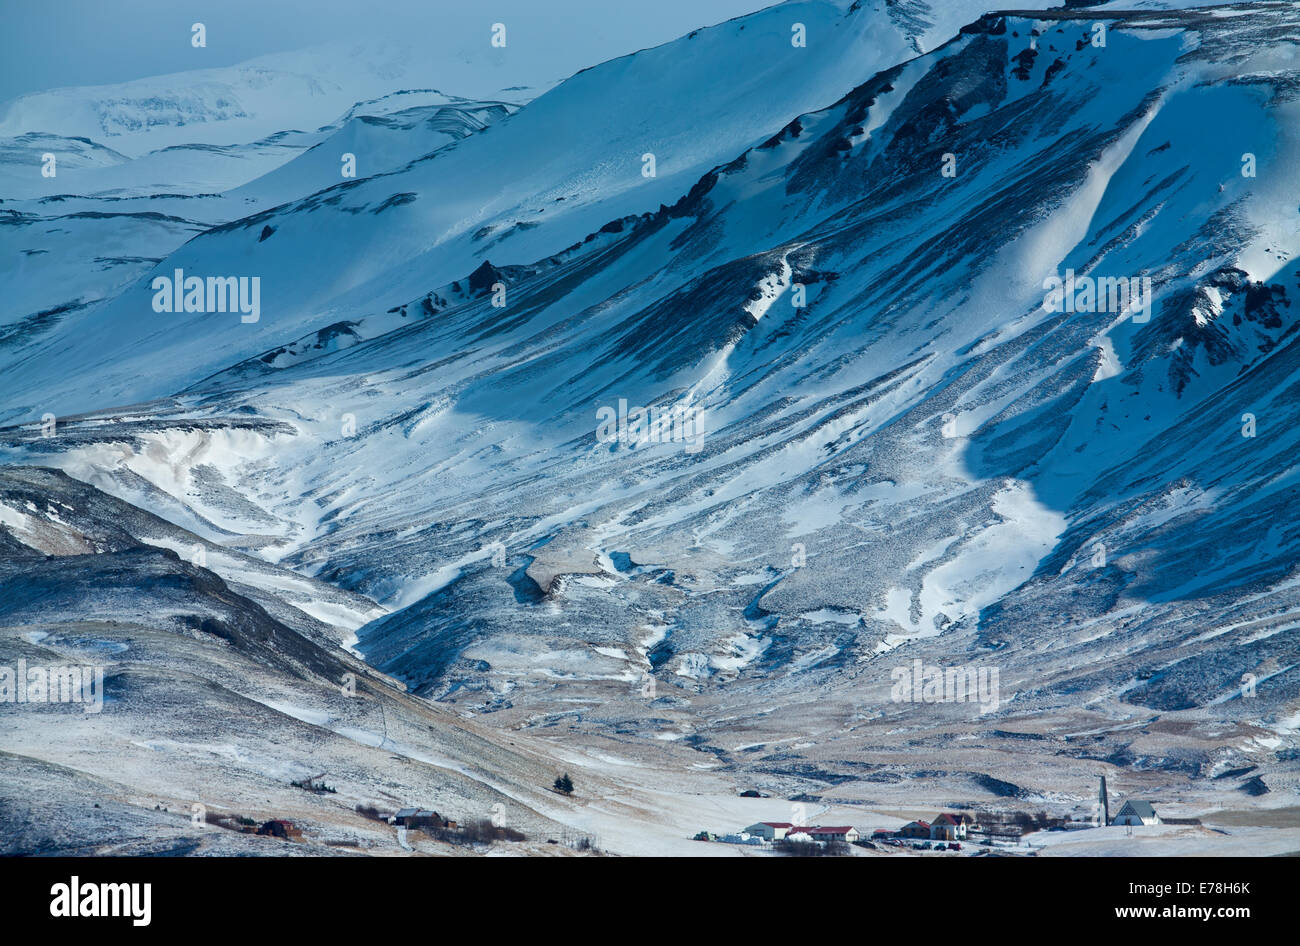 farmhouses dwarfed by the icy mass of Eyjafjallajökull, southern Iceland - Stock Image